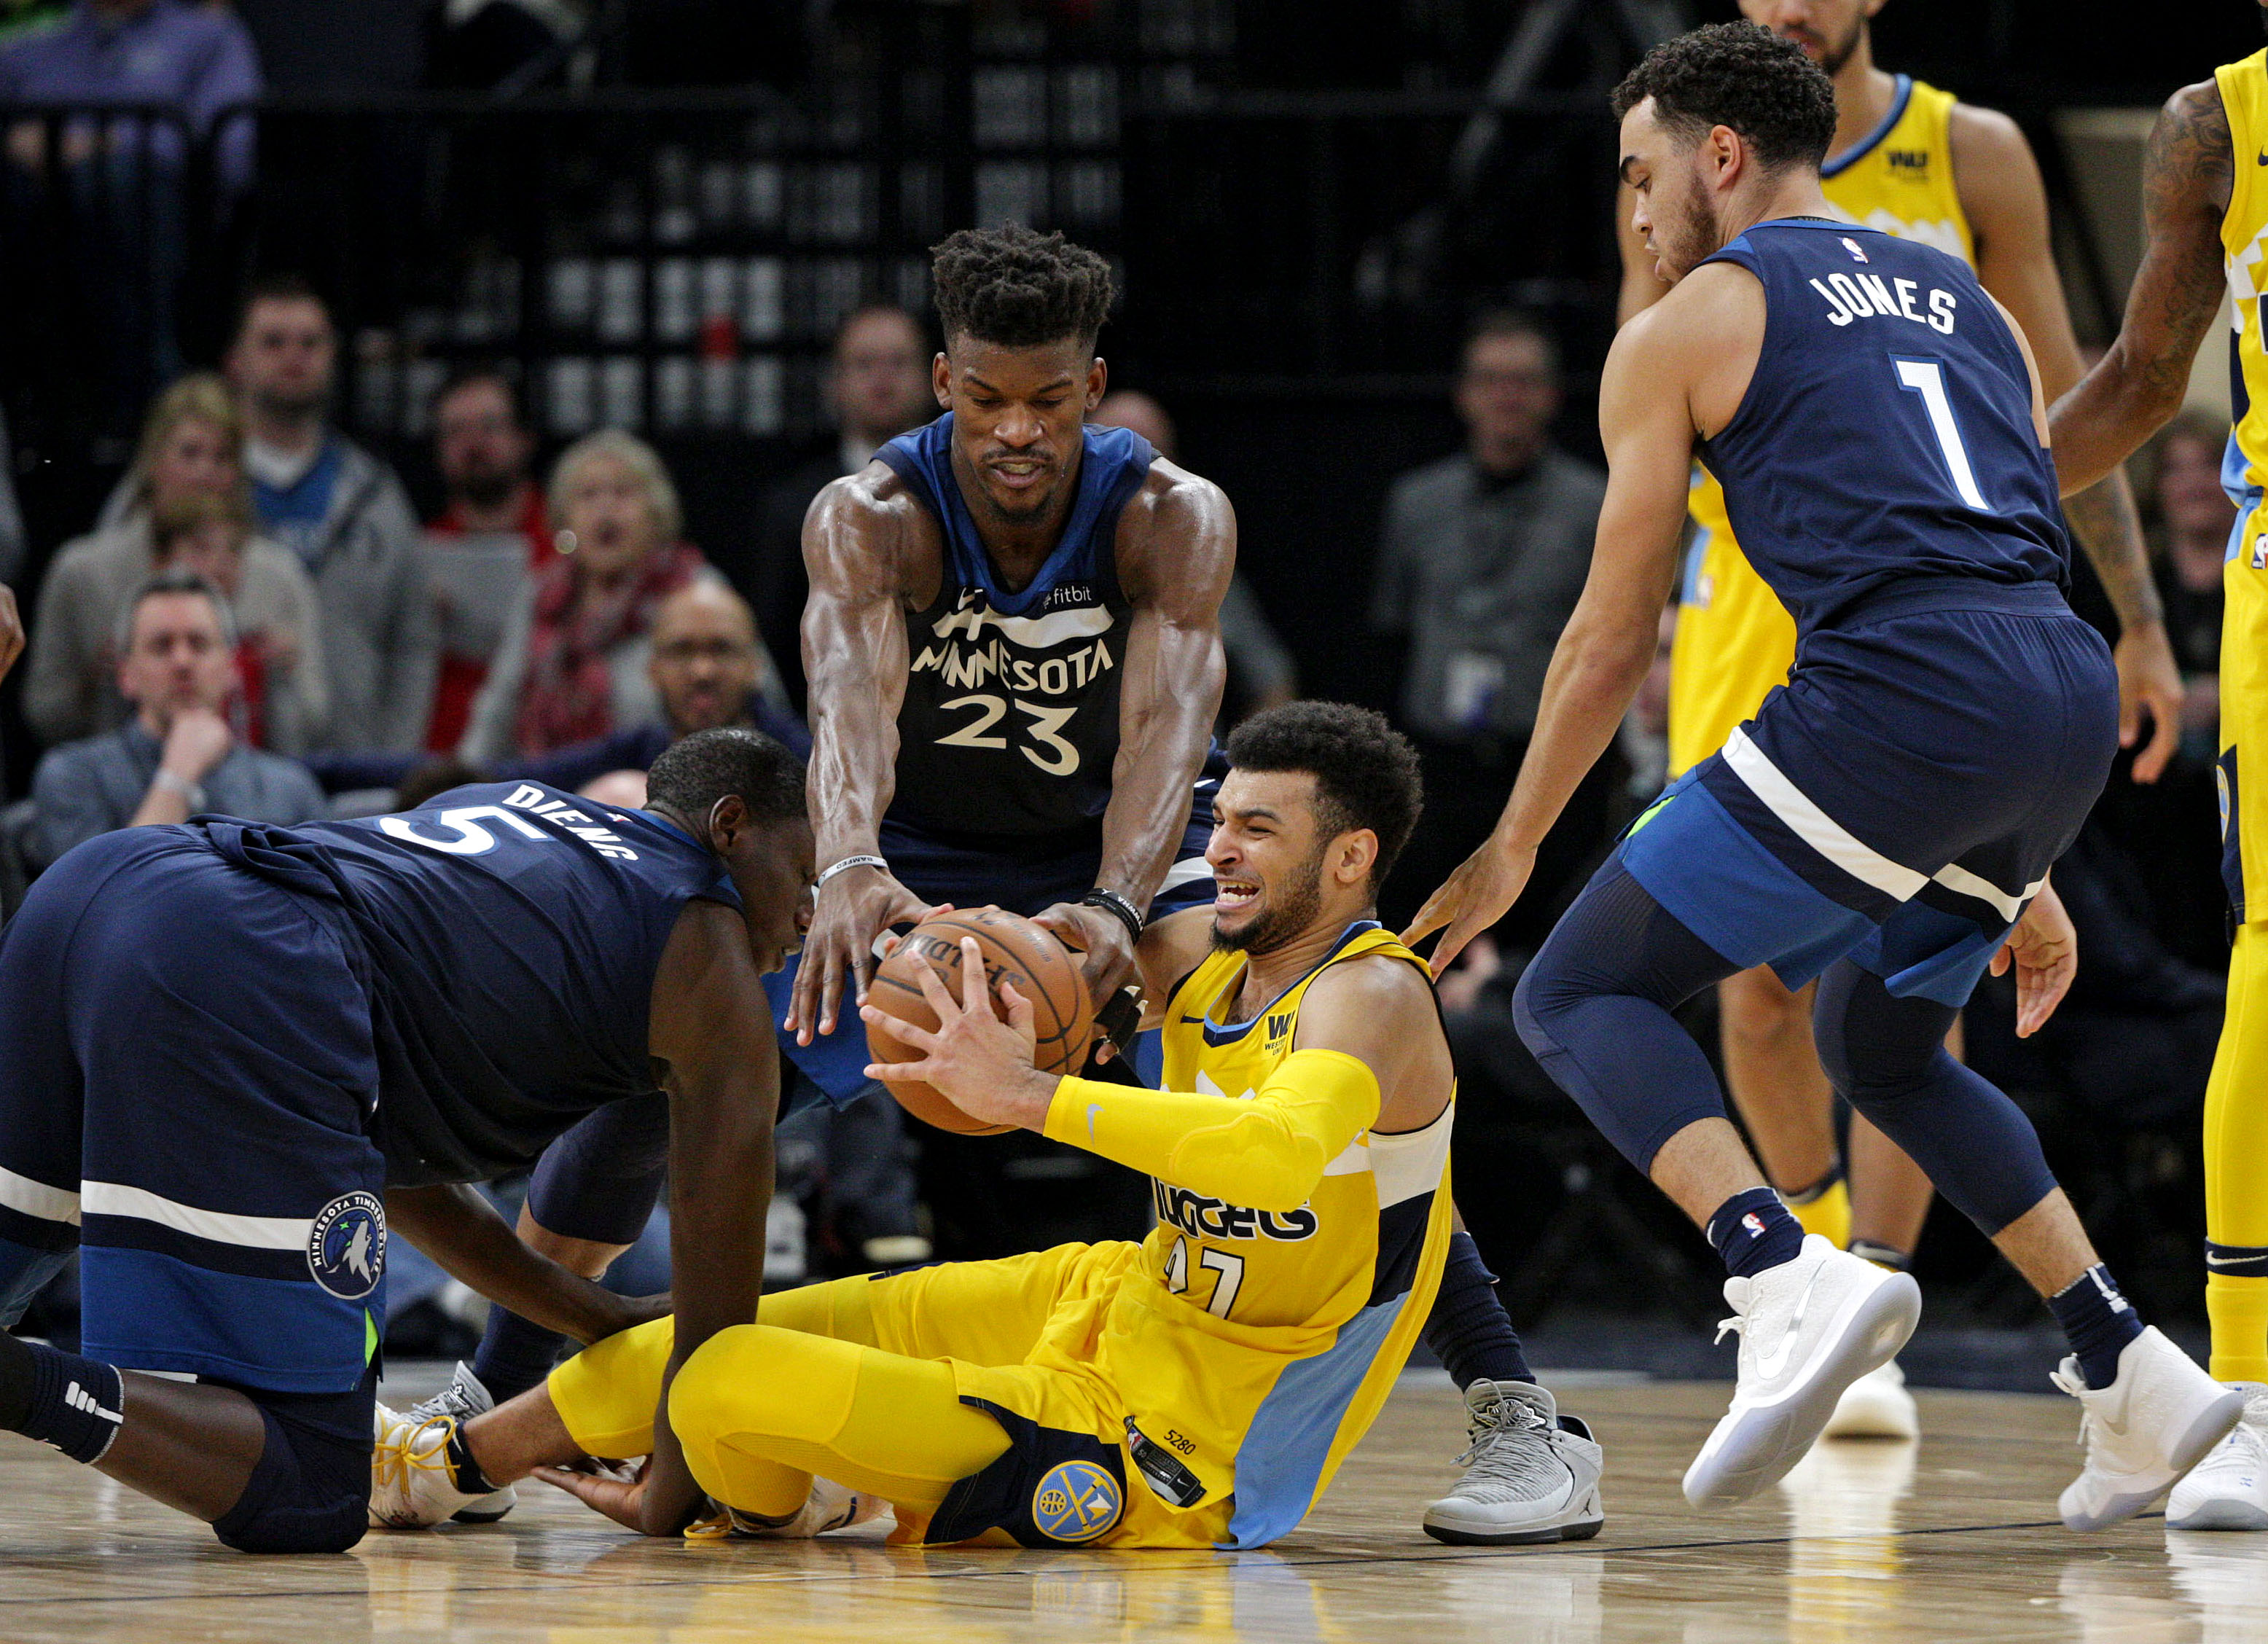 Denver Nuggets vs. Minnesota Timberwolves, 4-11